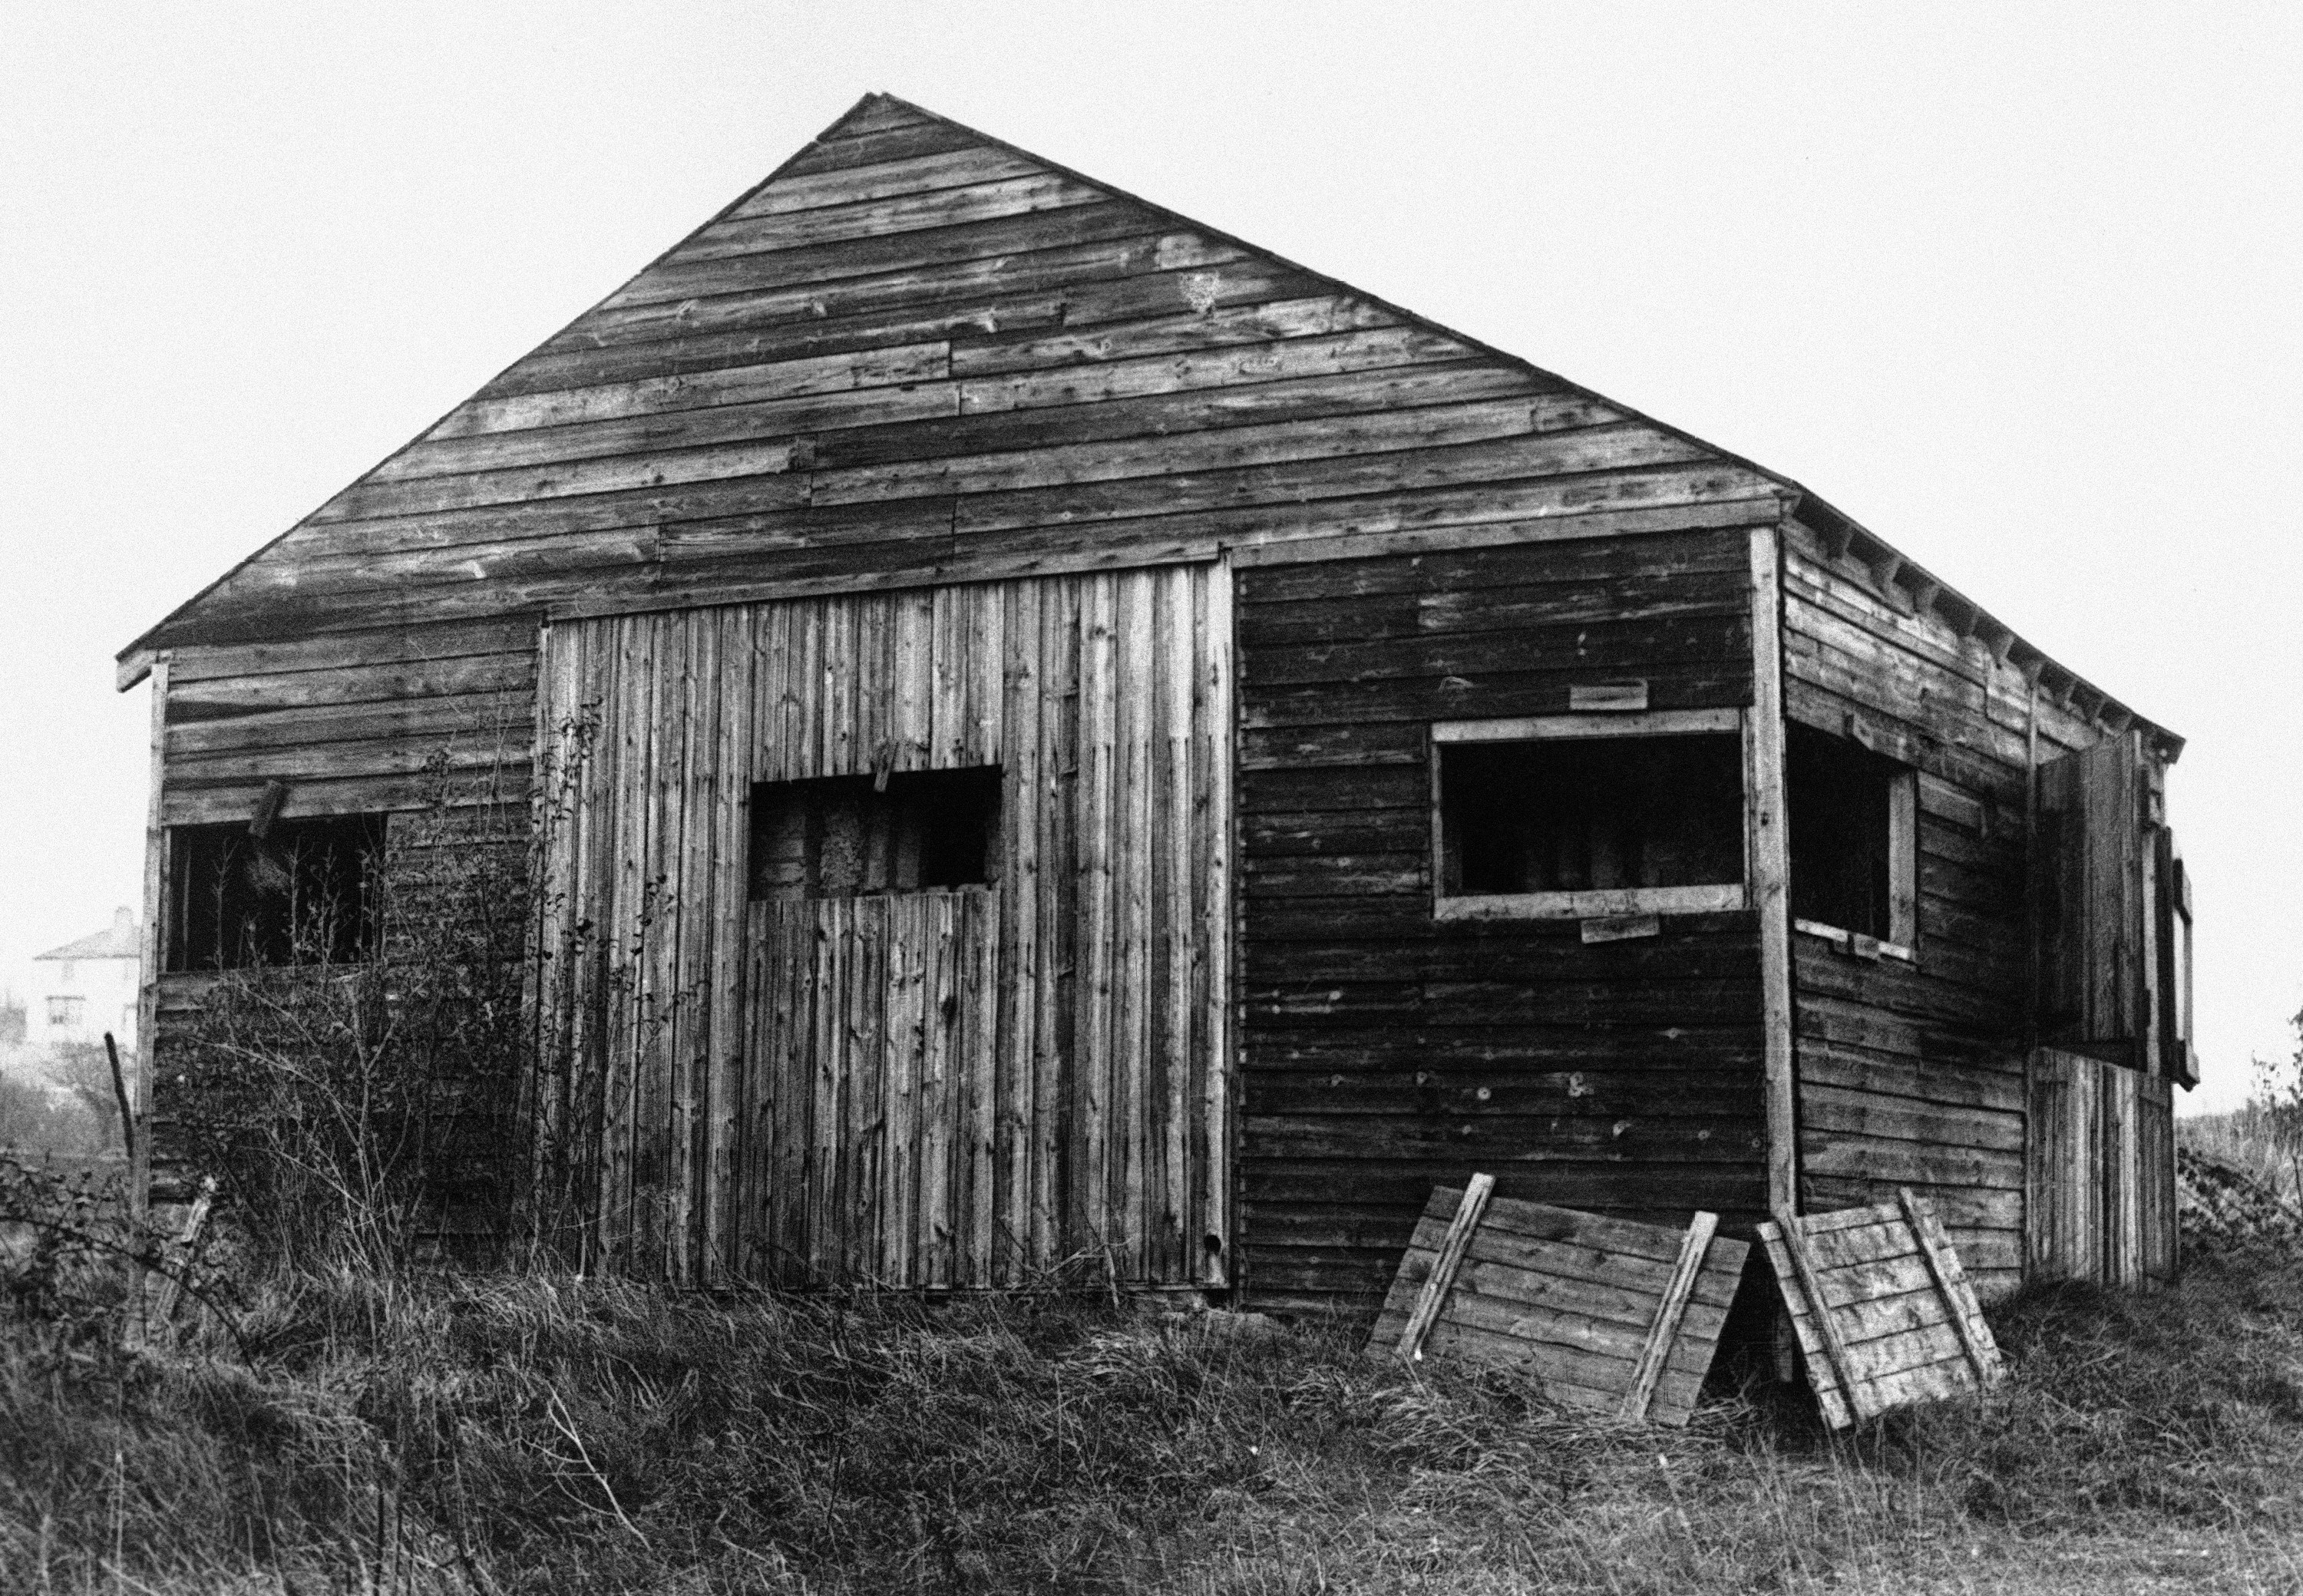 A lonely wooden shack is the simplest kind of pillbox camouflage in an undated photo. After the pillbox is built the shack is built round it. When the pillbox has to start shooting, the shack is knocked down.